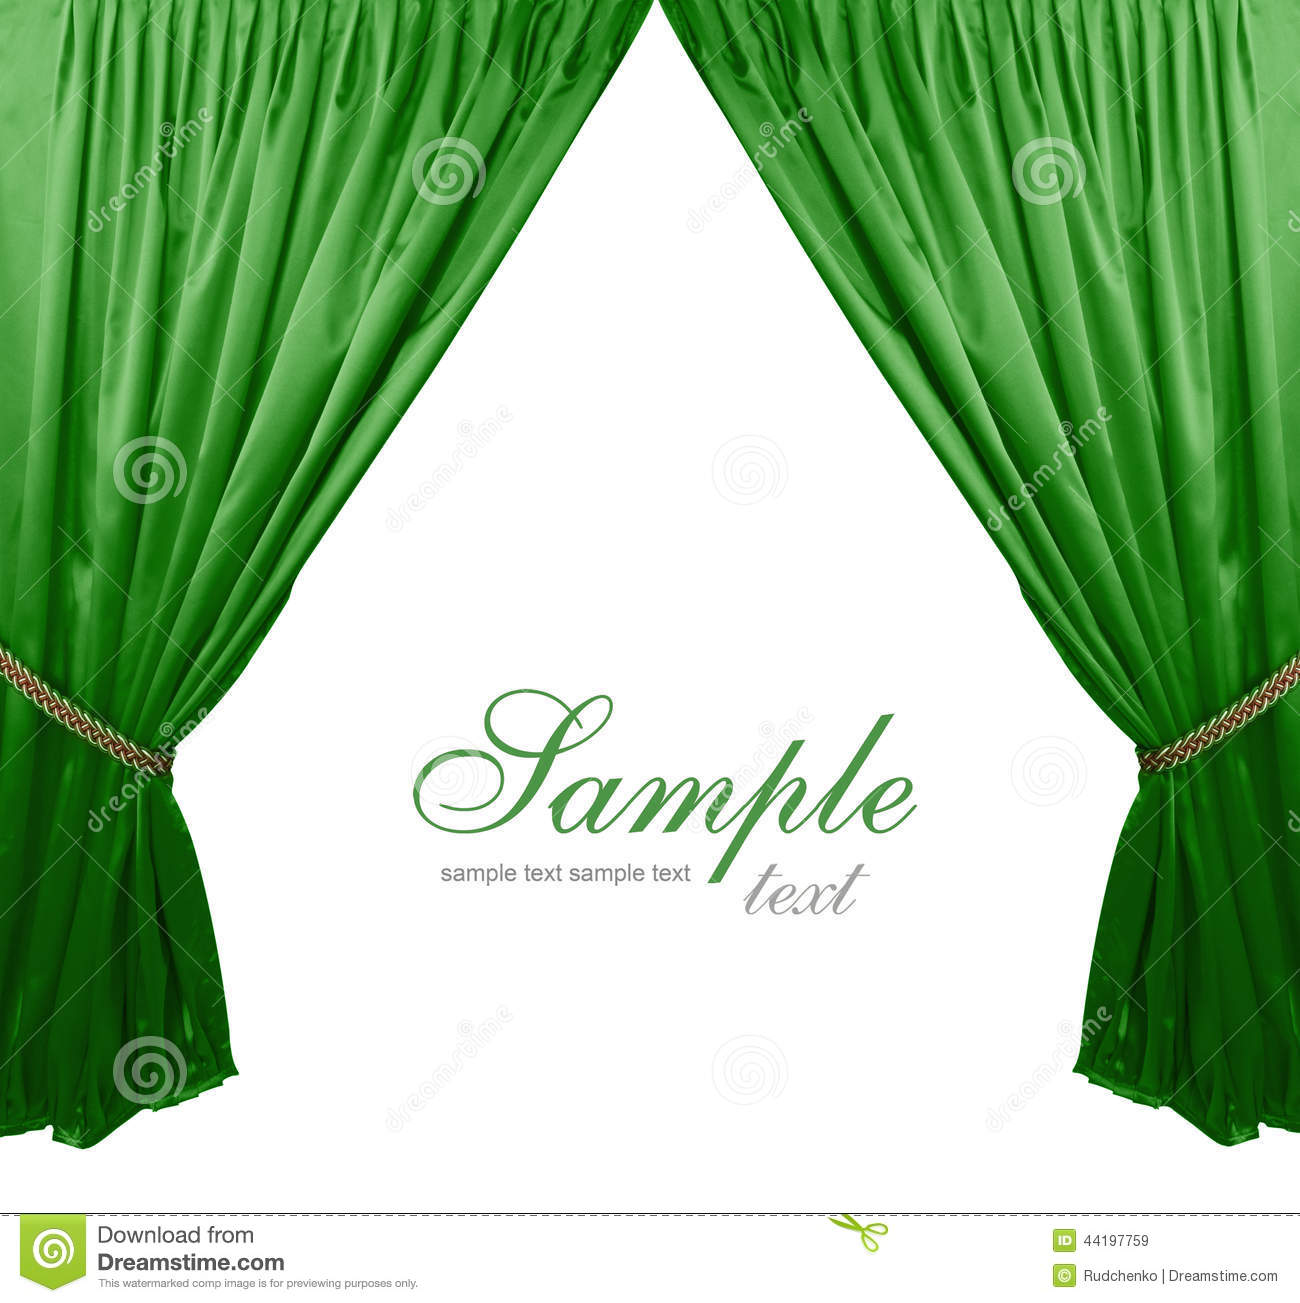 Green stage curtains - Green Theater Curtain Background Royalty Free Stock Images